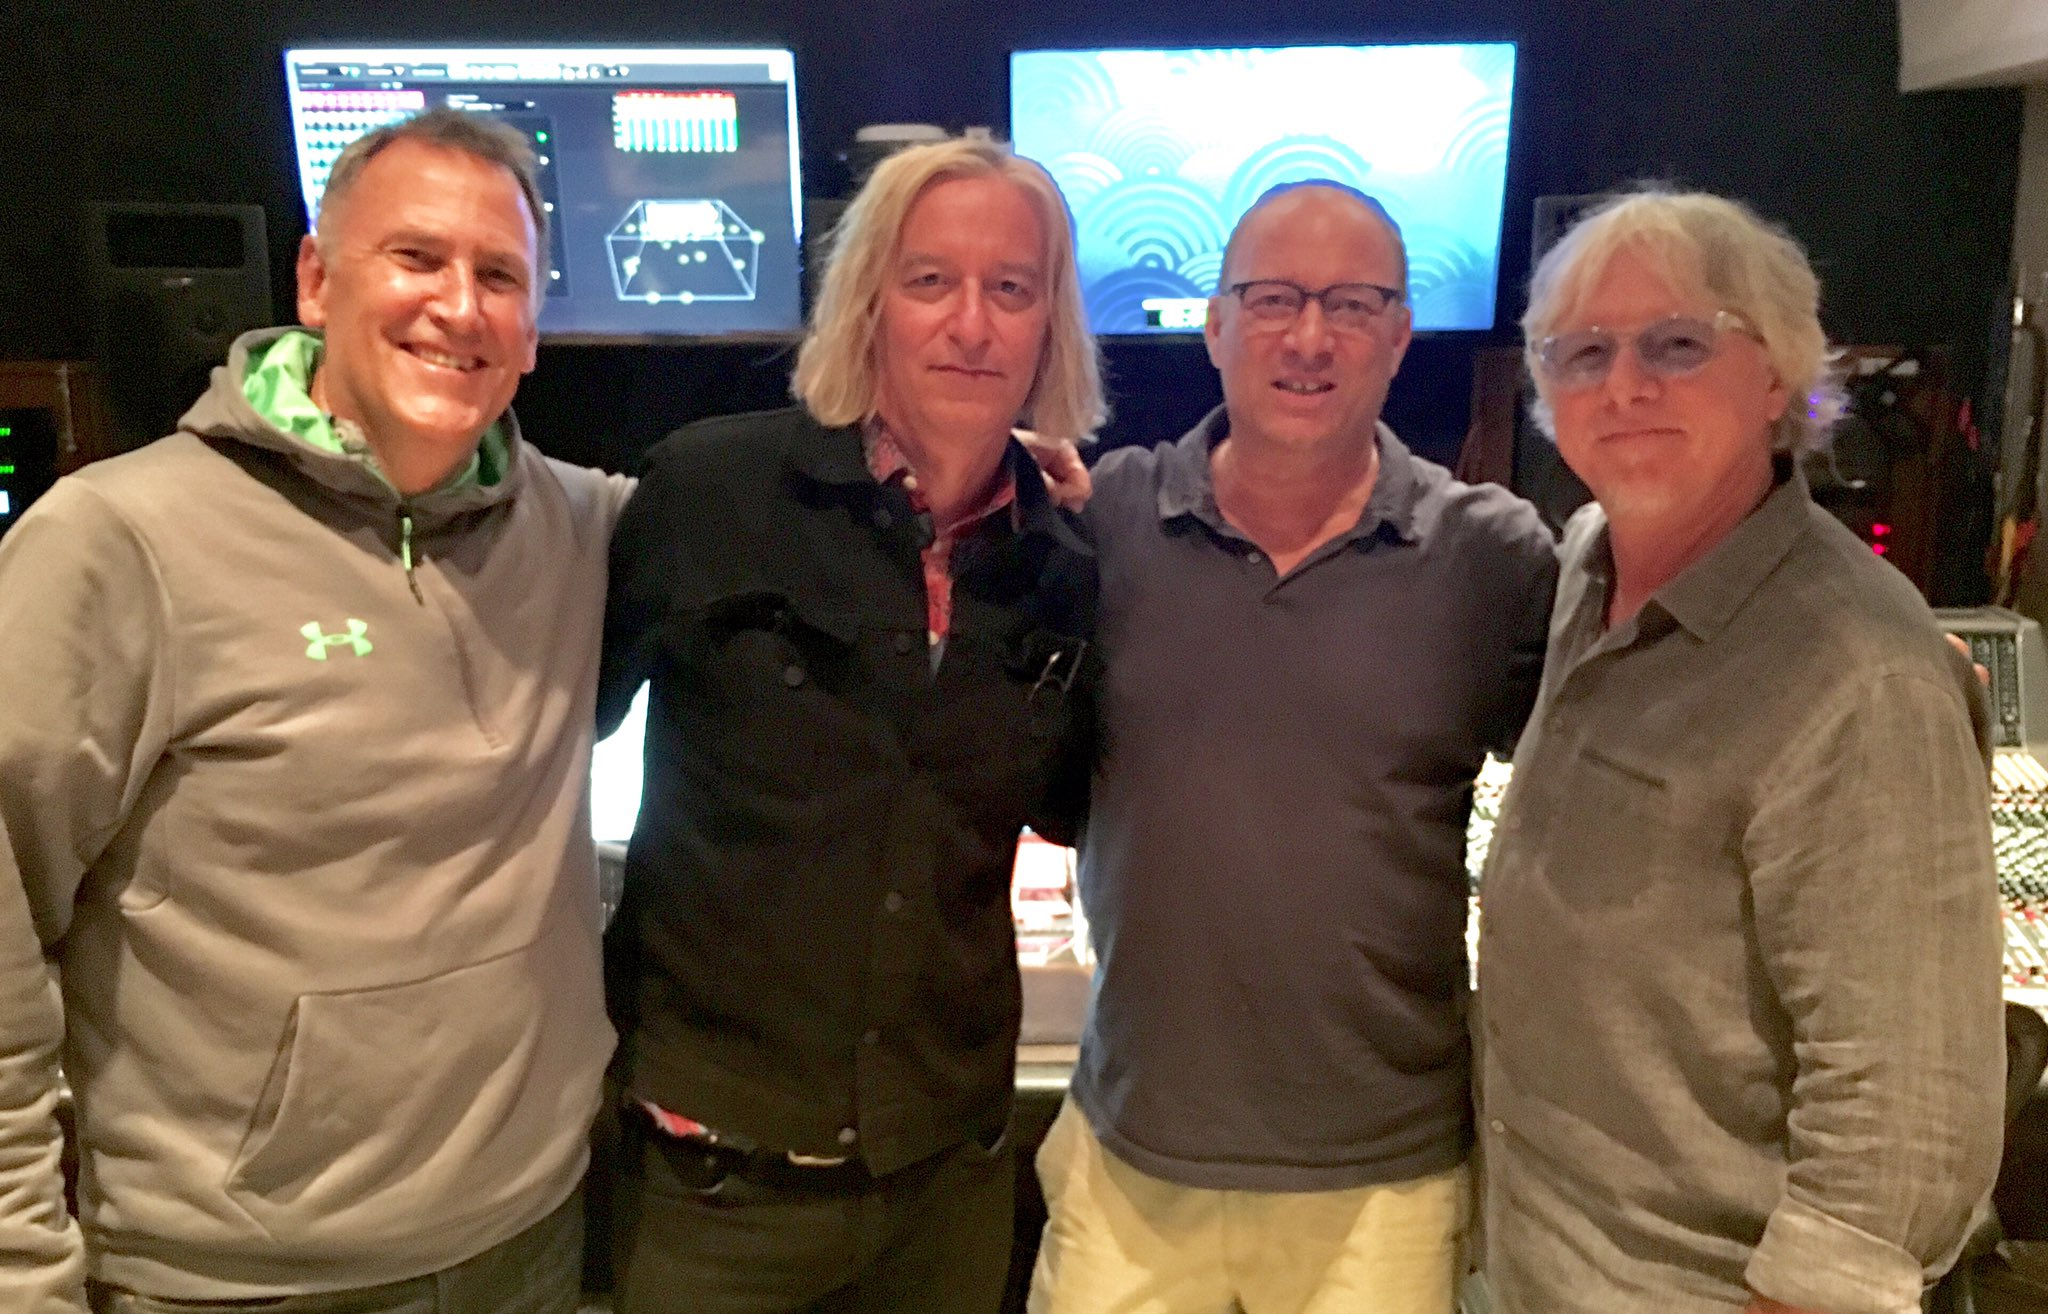 Happy Birthday to Peter Buck of R.E.M. ! It s always amazing working with this talented and super cool guy!